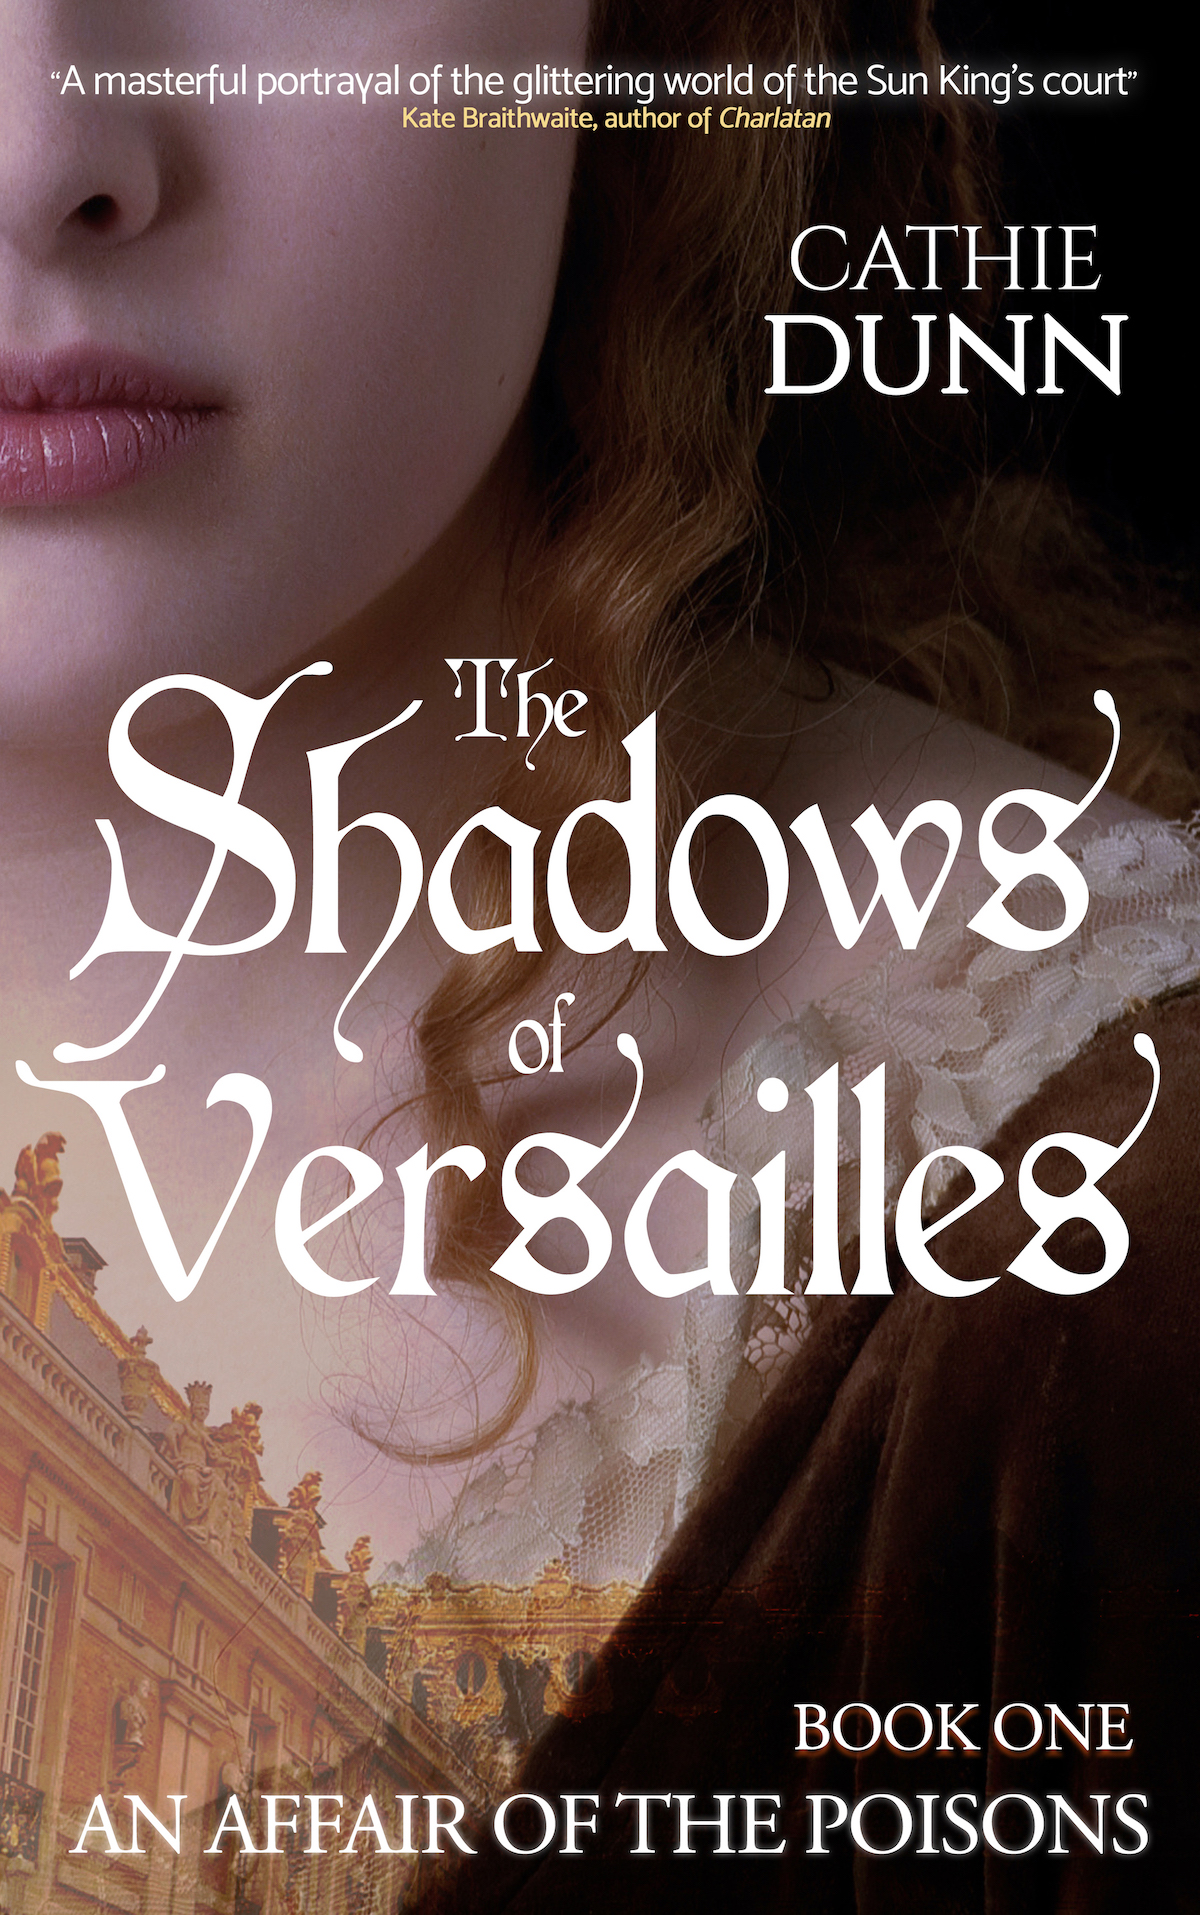 //www.cathiedunn.com/wp-content/uploads/2020/11/Shadows-of-Versailles-smallest.jpeg